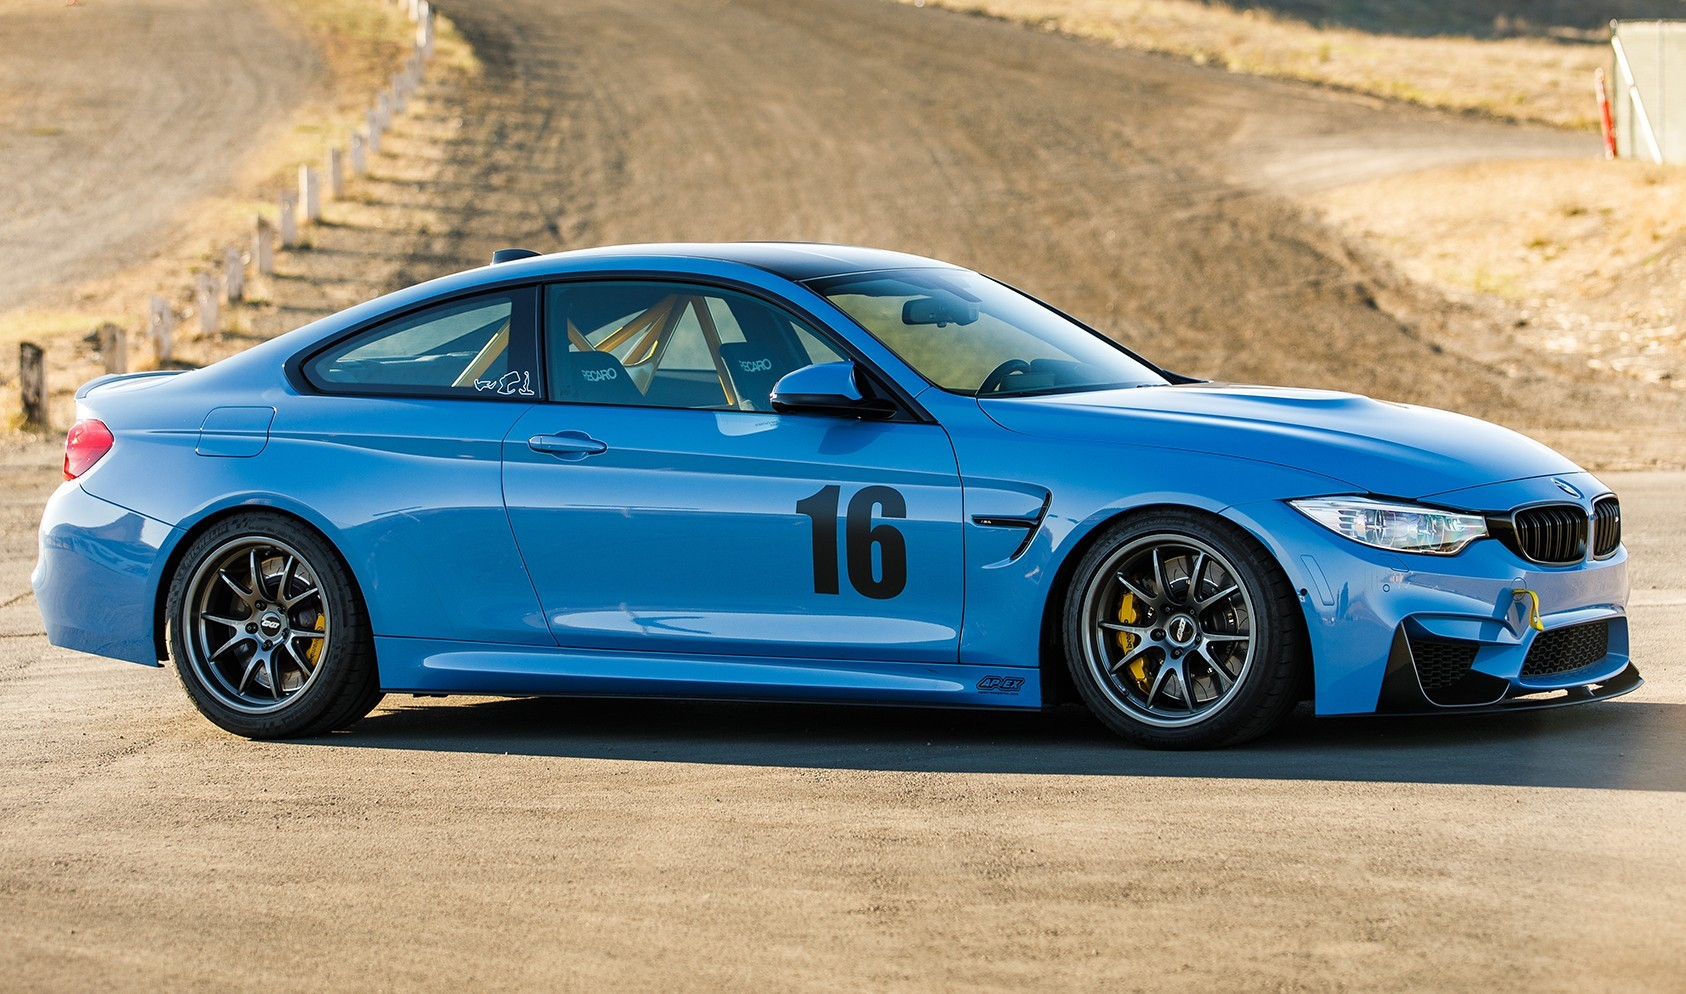 """F82 M4 FL-5 Staggered Fitment<br>Front:<br>Anthracite 18x10"""" ET25 with 275/35-18 Michelin Pilot Super Sport tires<br>Rear:<br>Anthracite 18x11"""" ET44 with 295/35/18 Michelin Pilot Super Sport tires"""